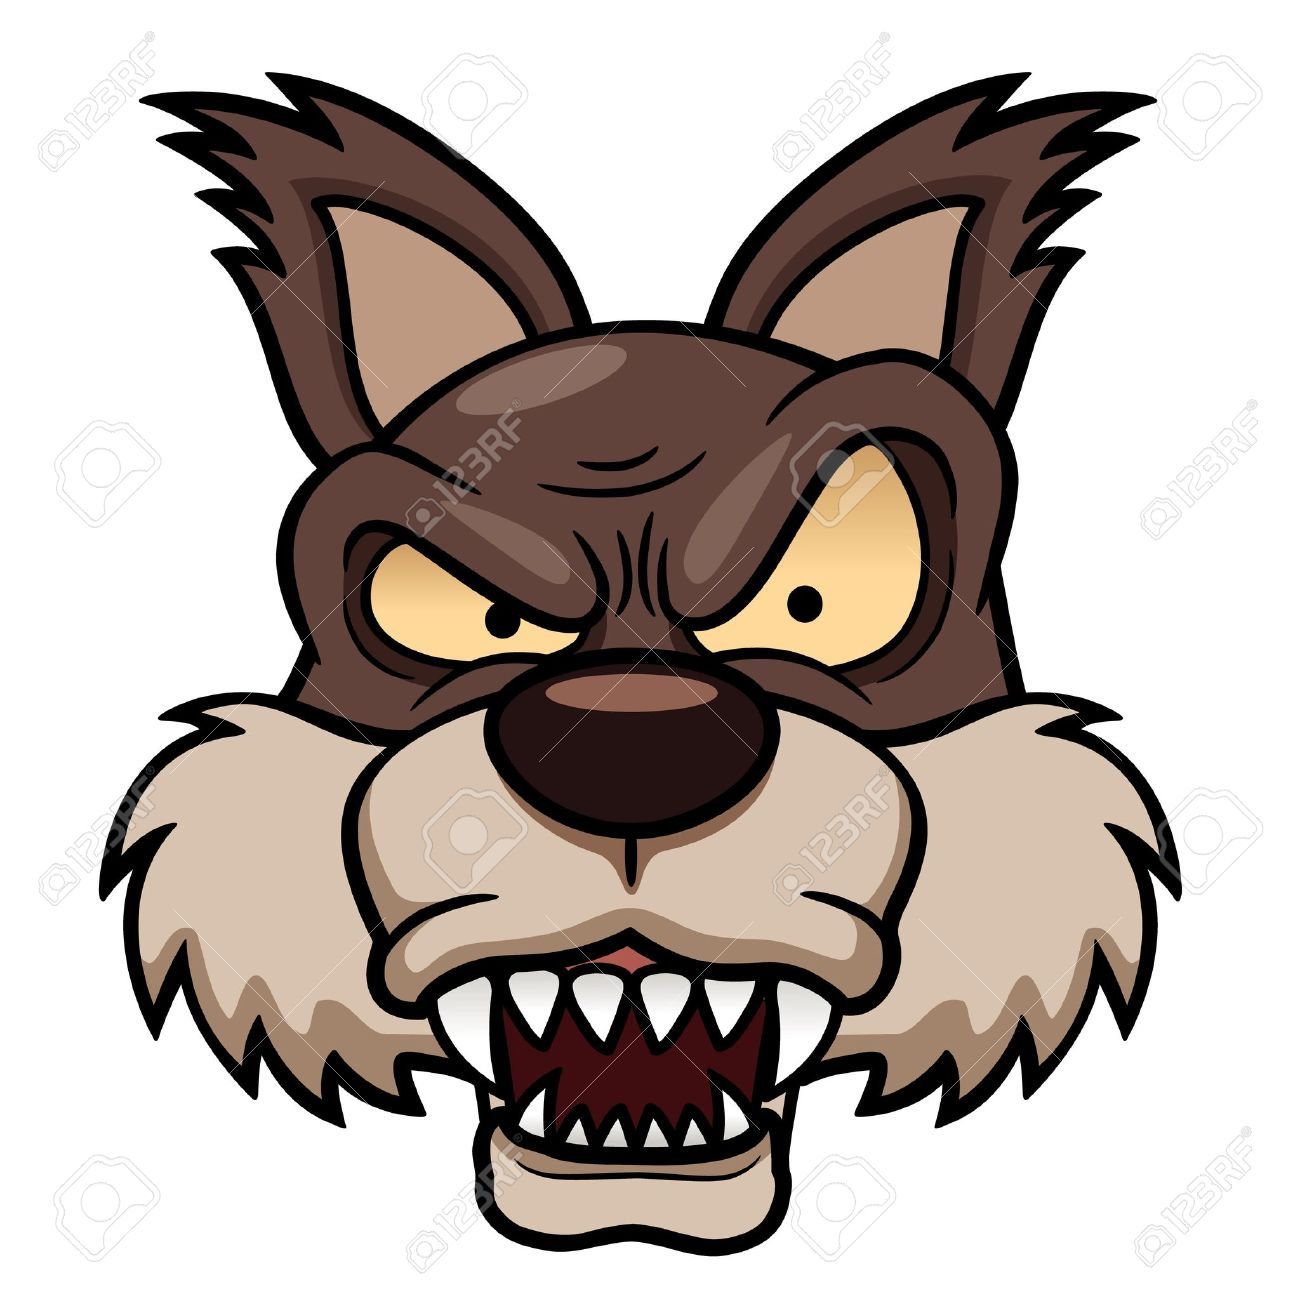 1300x1300 Illustration Of Cartoon Wolf Face Royalty Free Cliparts, Vectors